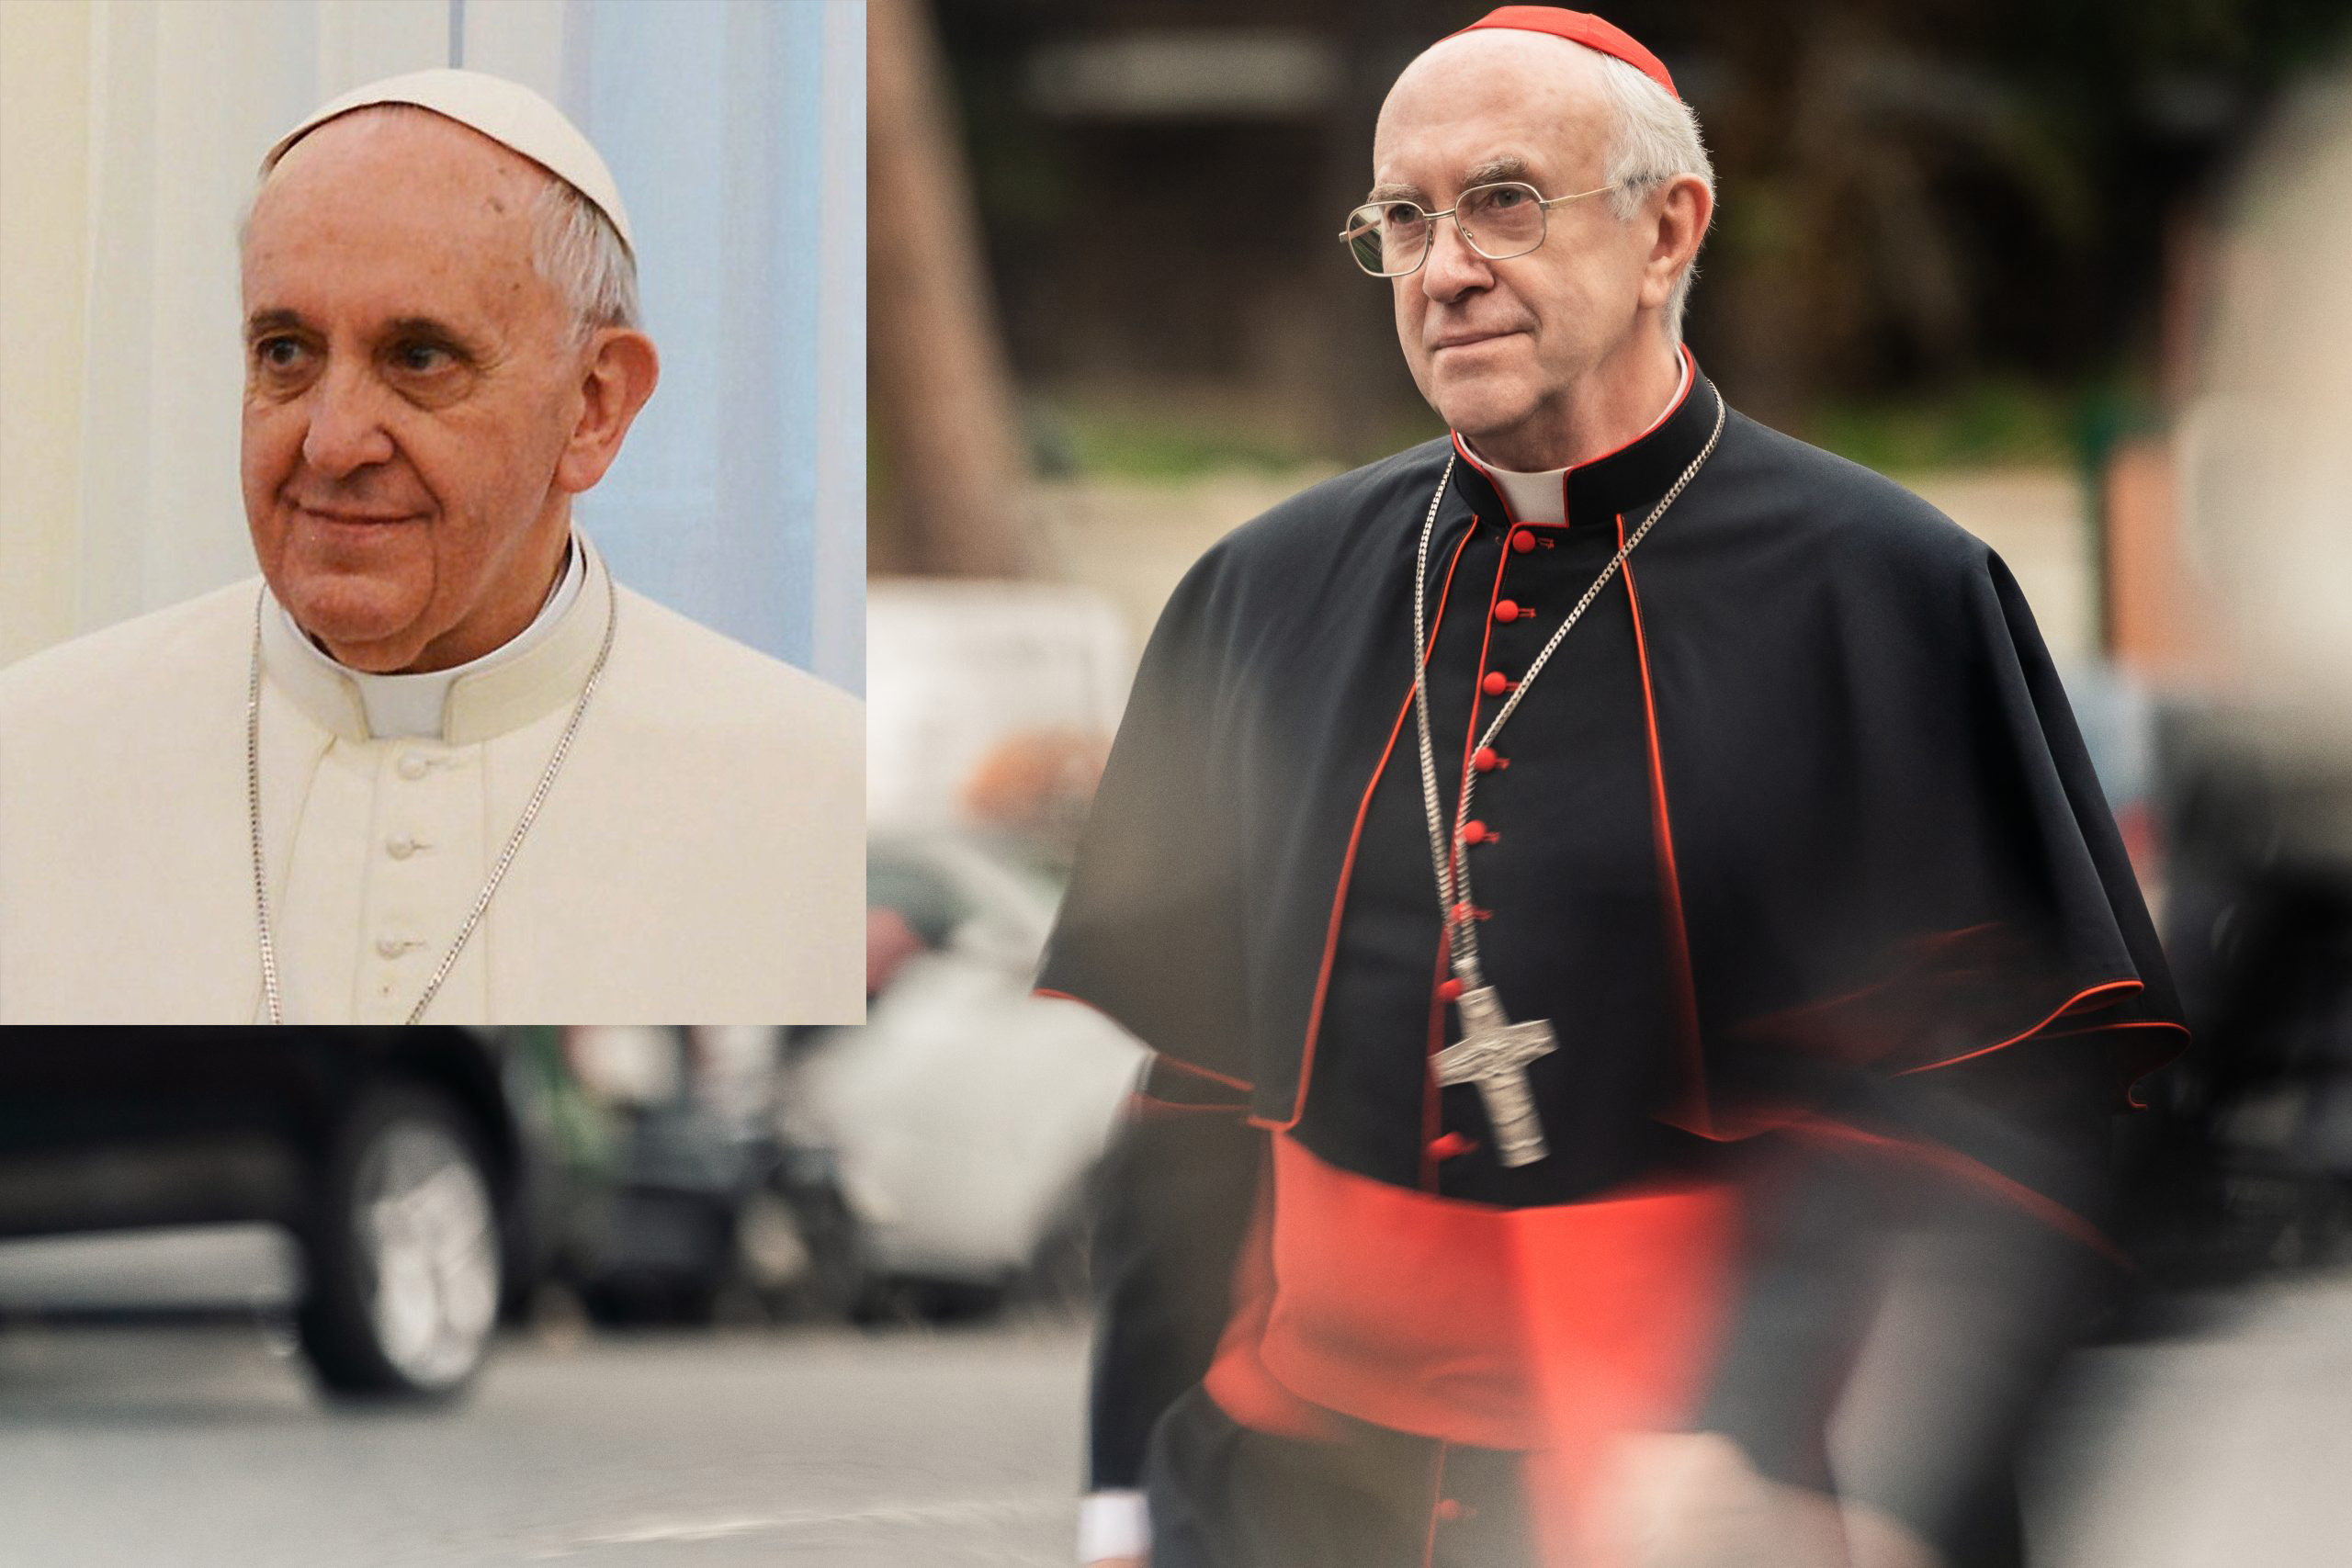 jonathan pryce pope francis 20 Actors Who Looked Exactly Like The Real People They Played